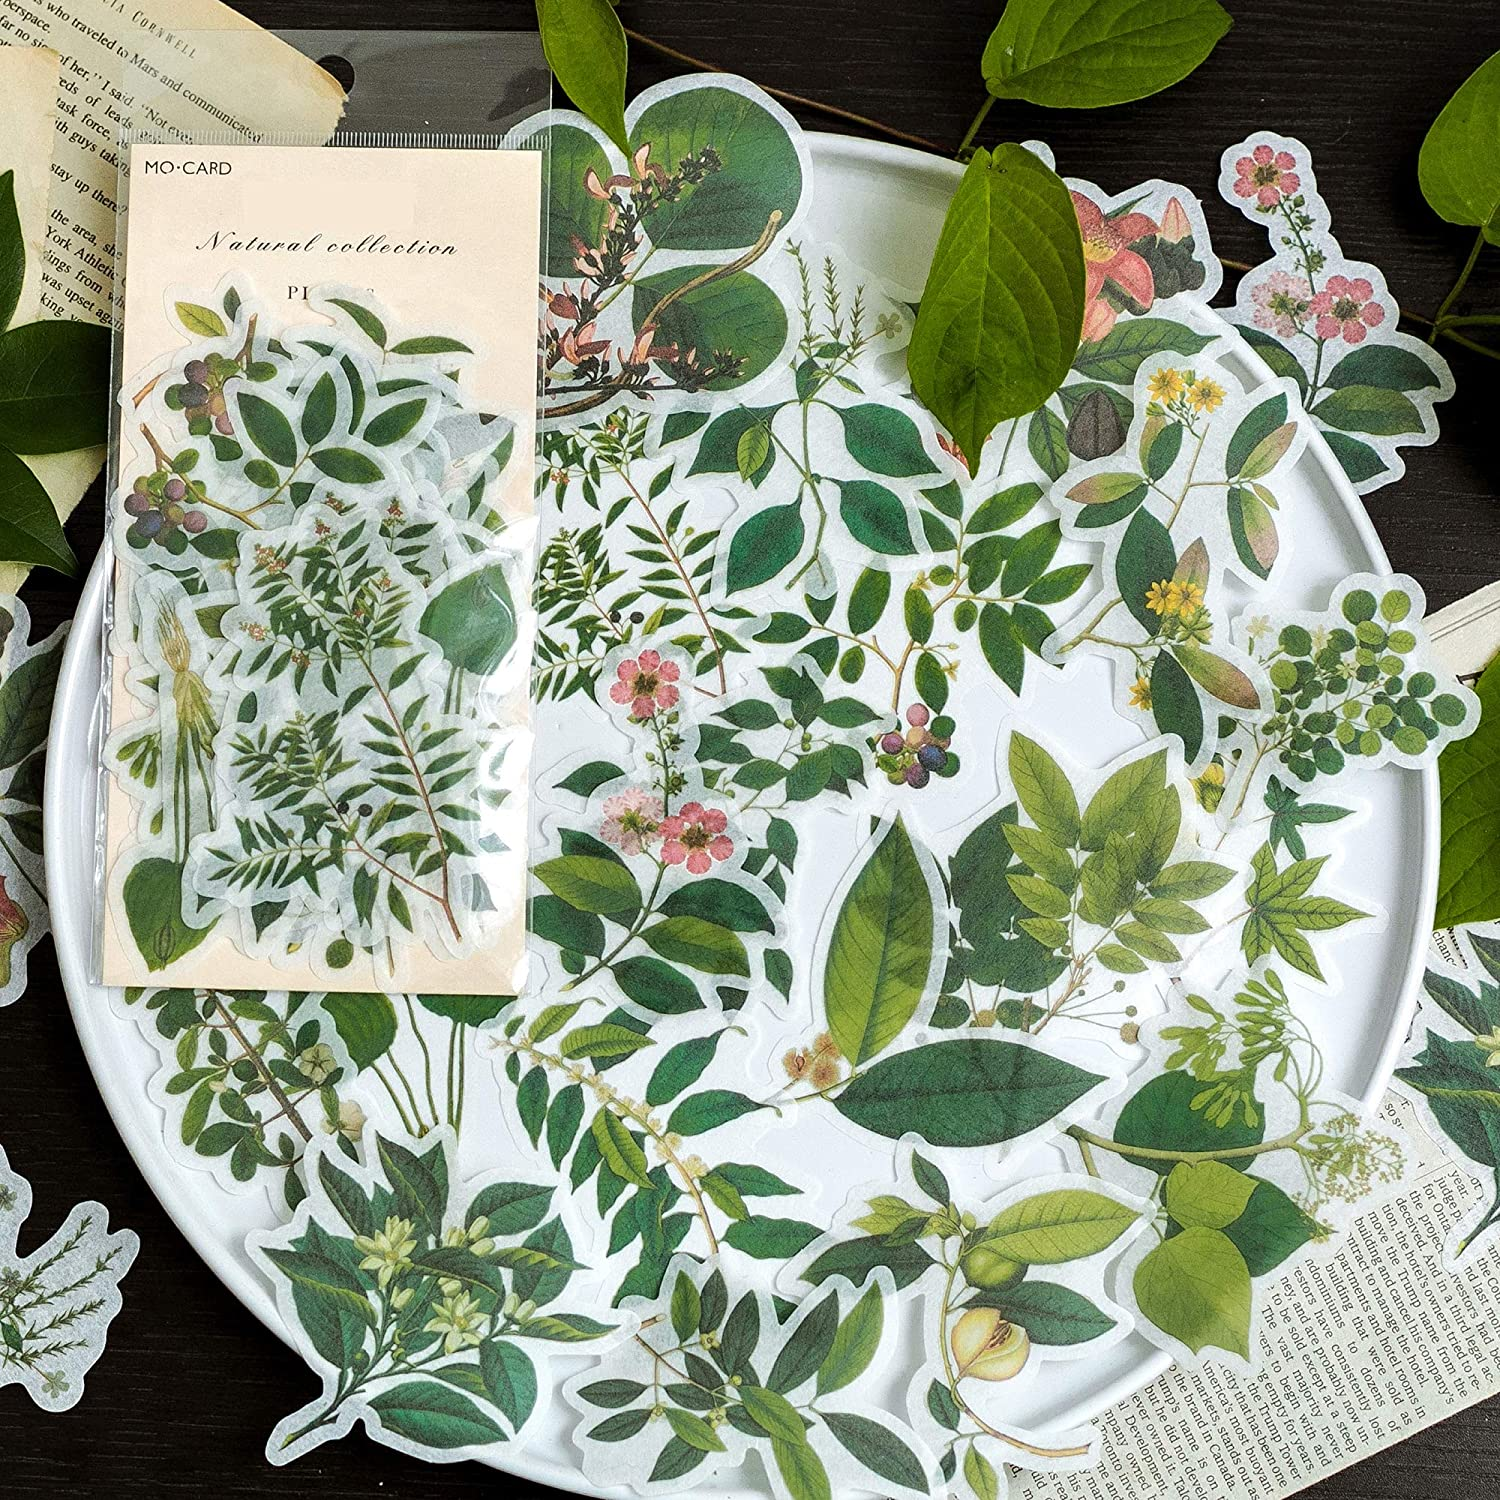 Green Plants Style Stickers Pack 60 Pcs Foliage Stickers Botanical Stickers Decals for Laptop Bumper Helmet Ipad Car Luggage Water Bottle